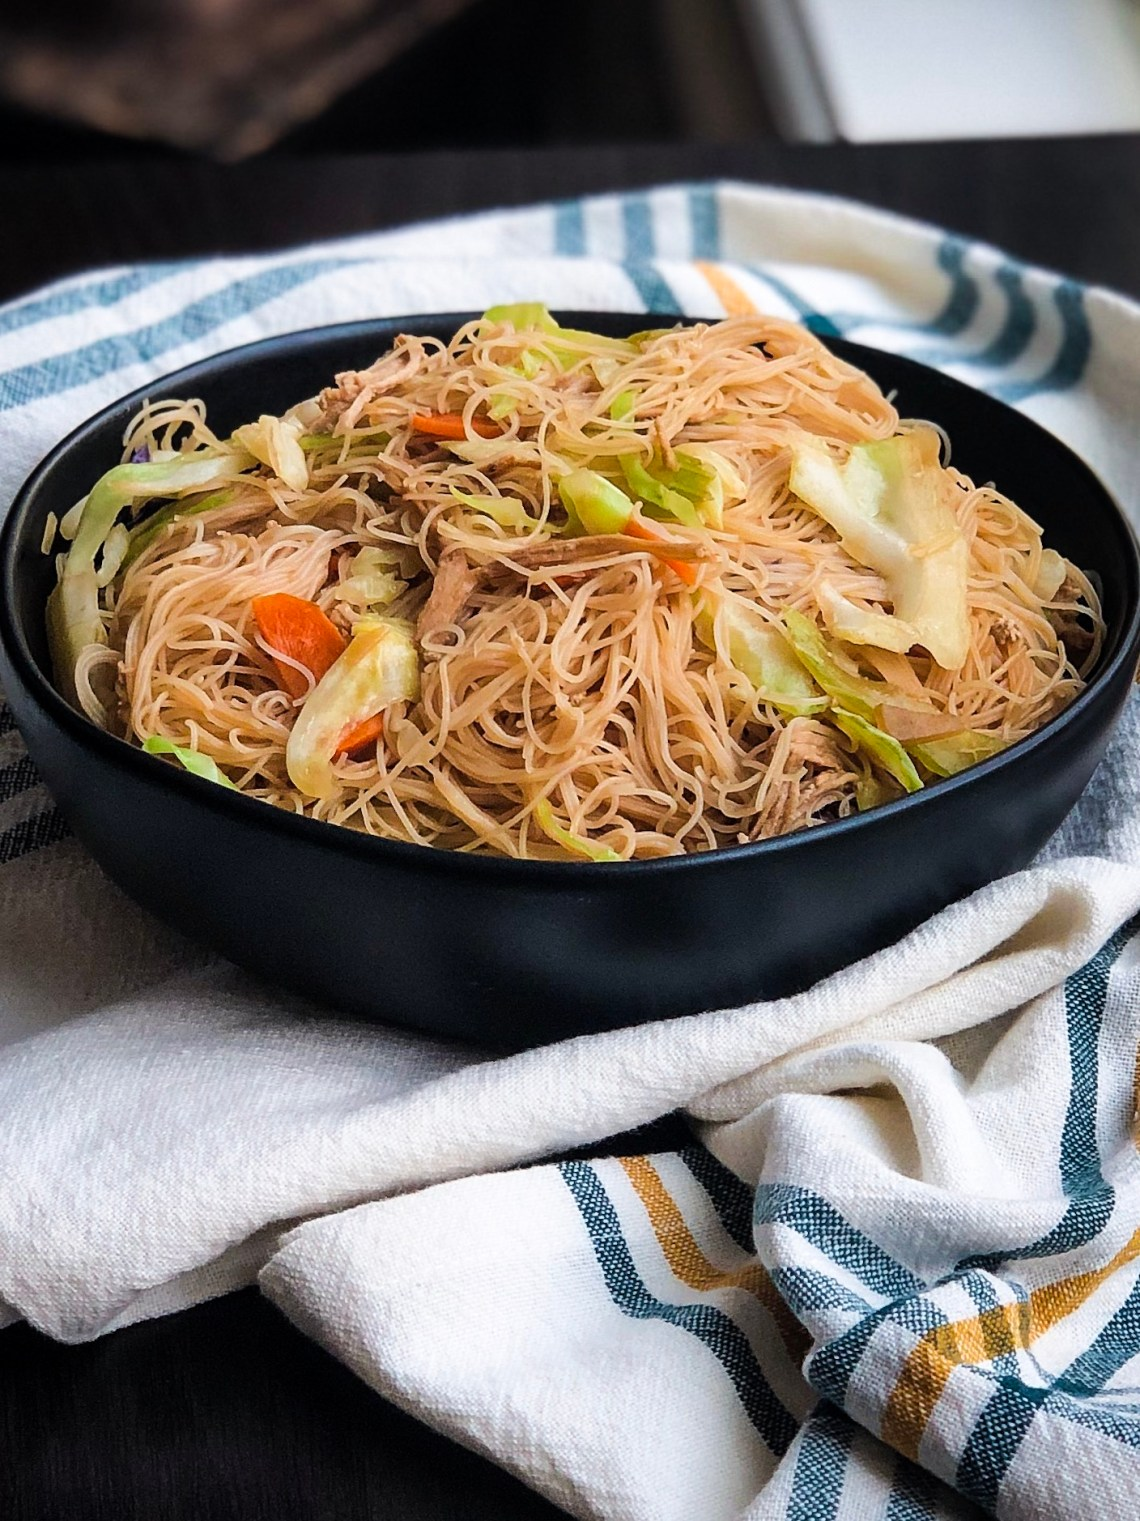 Authentic Pancit Recipe Filipino Noodles With Chicken A Healthy Makeover